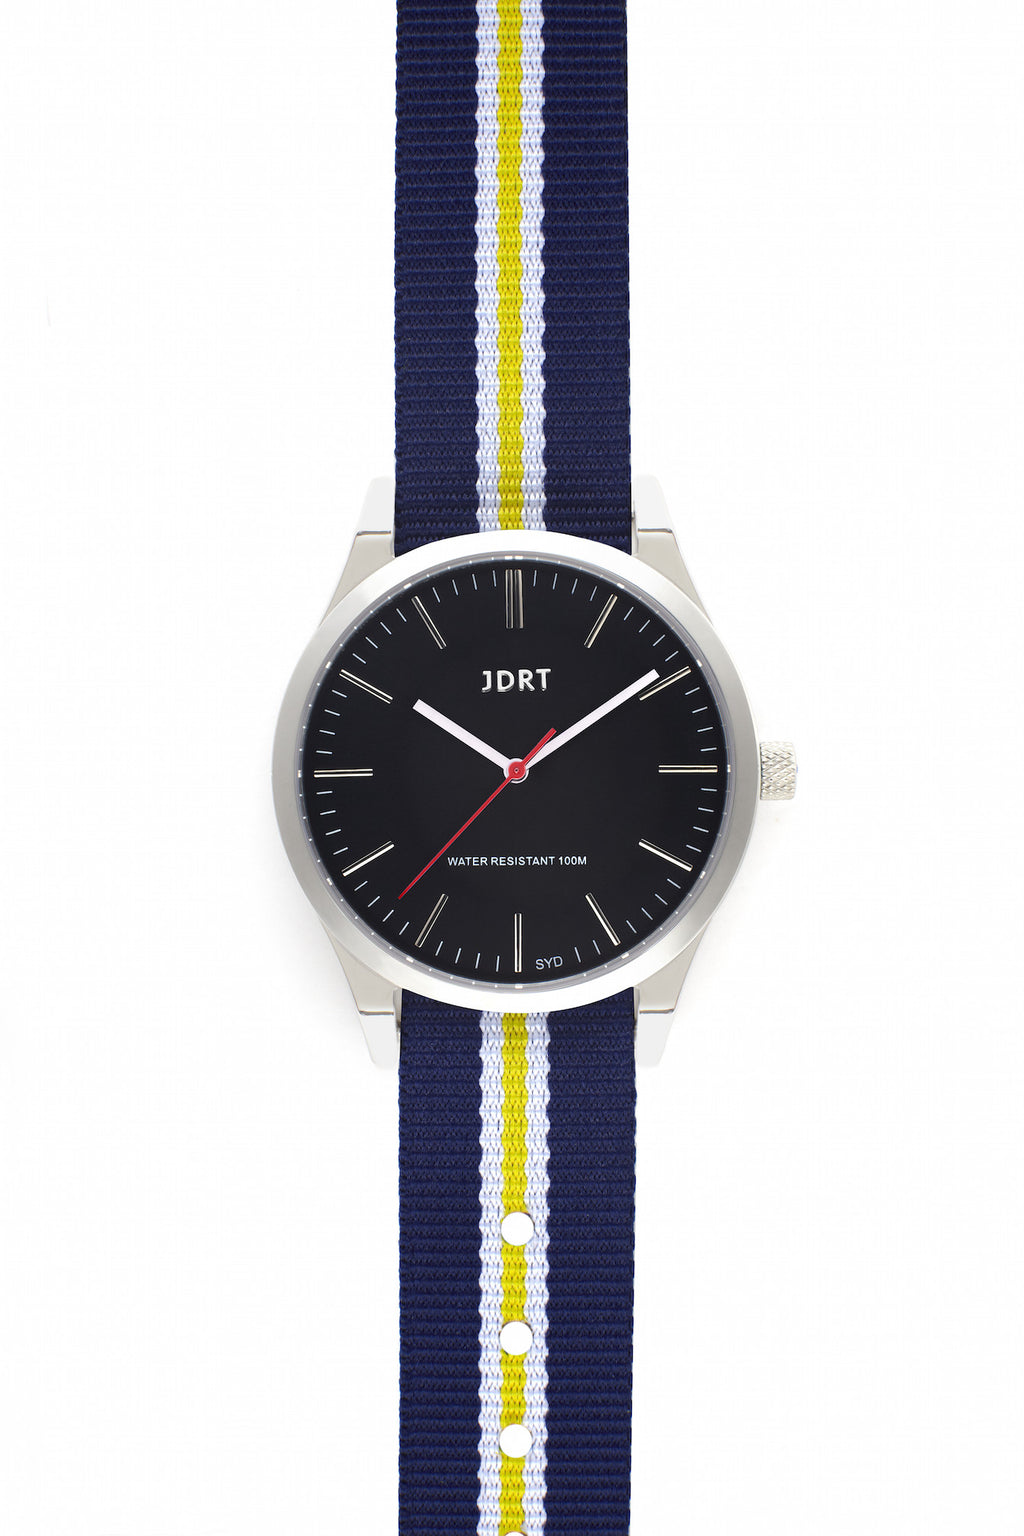 Jet Face with Paddington NATO Watch Band